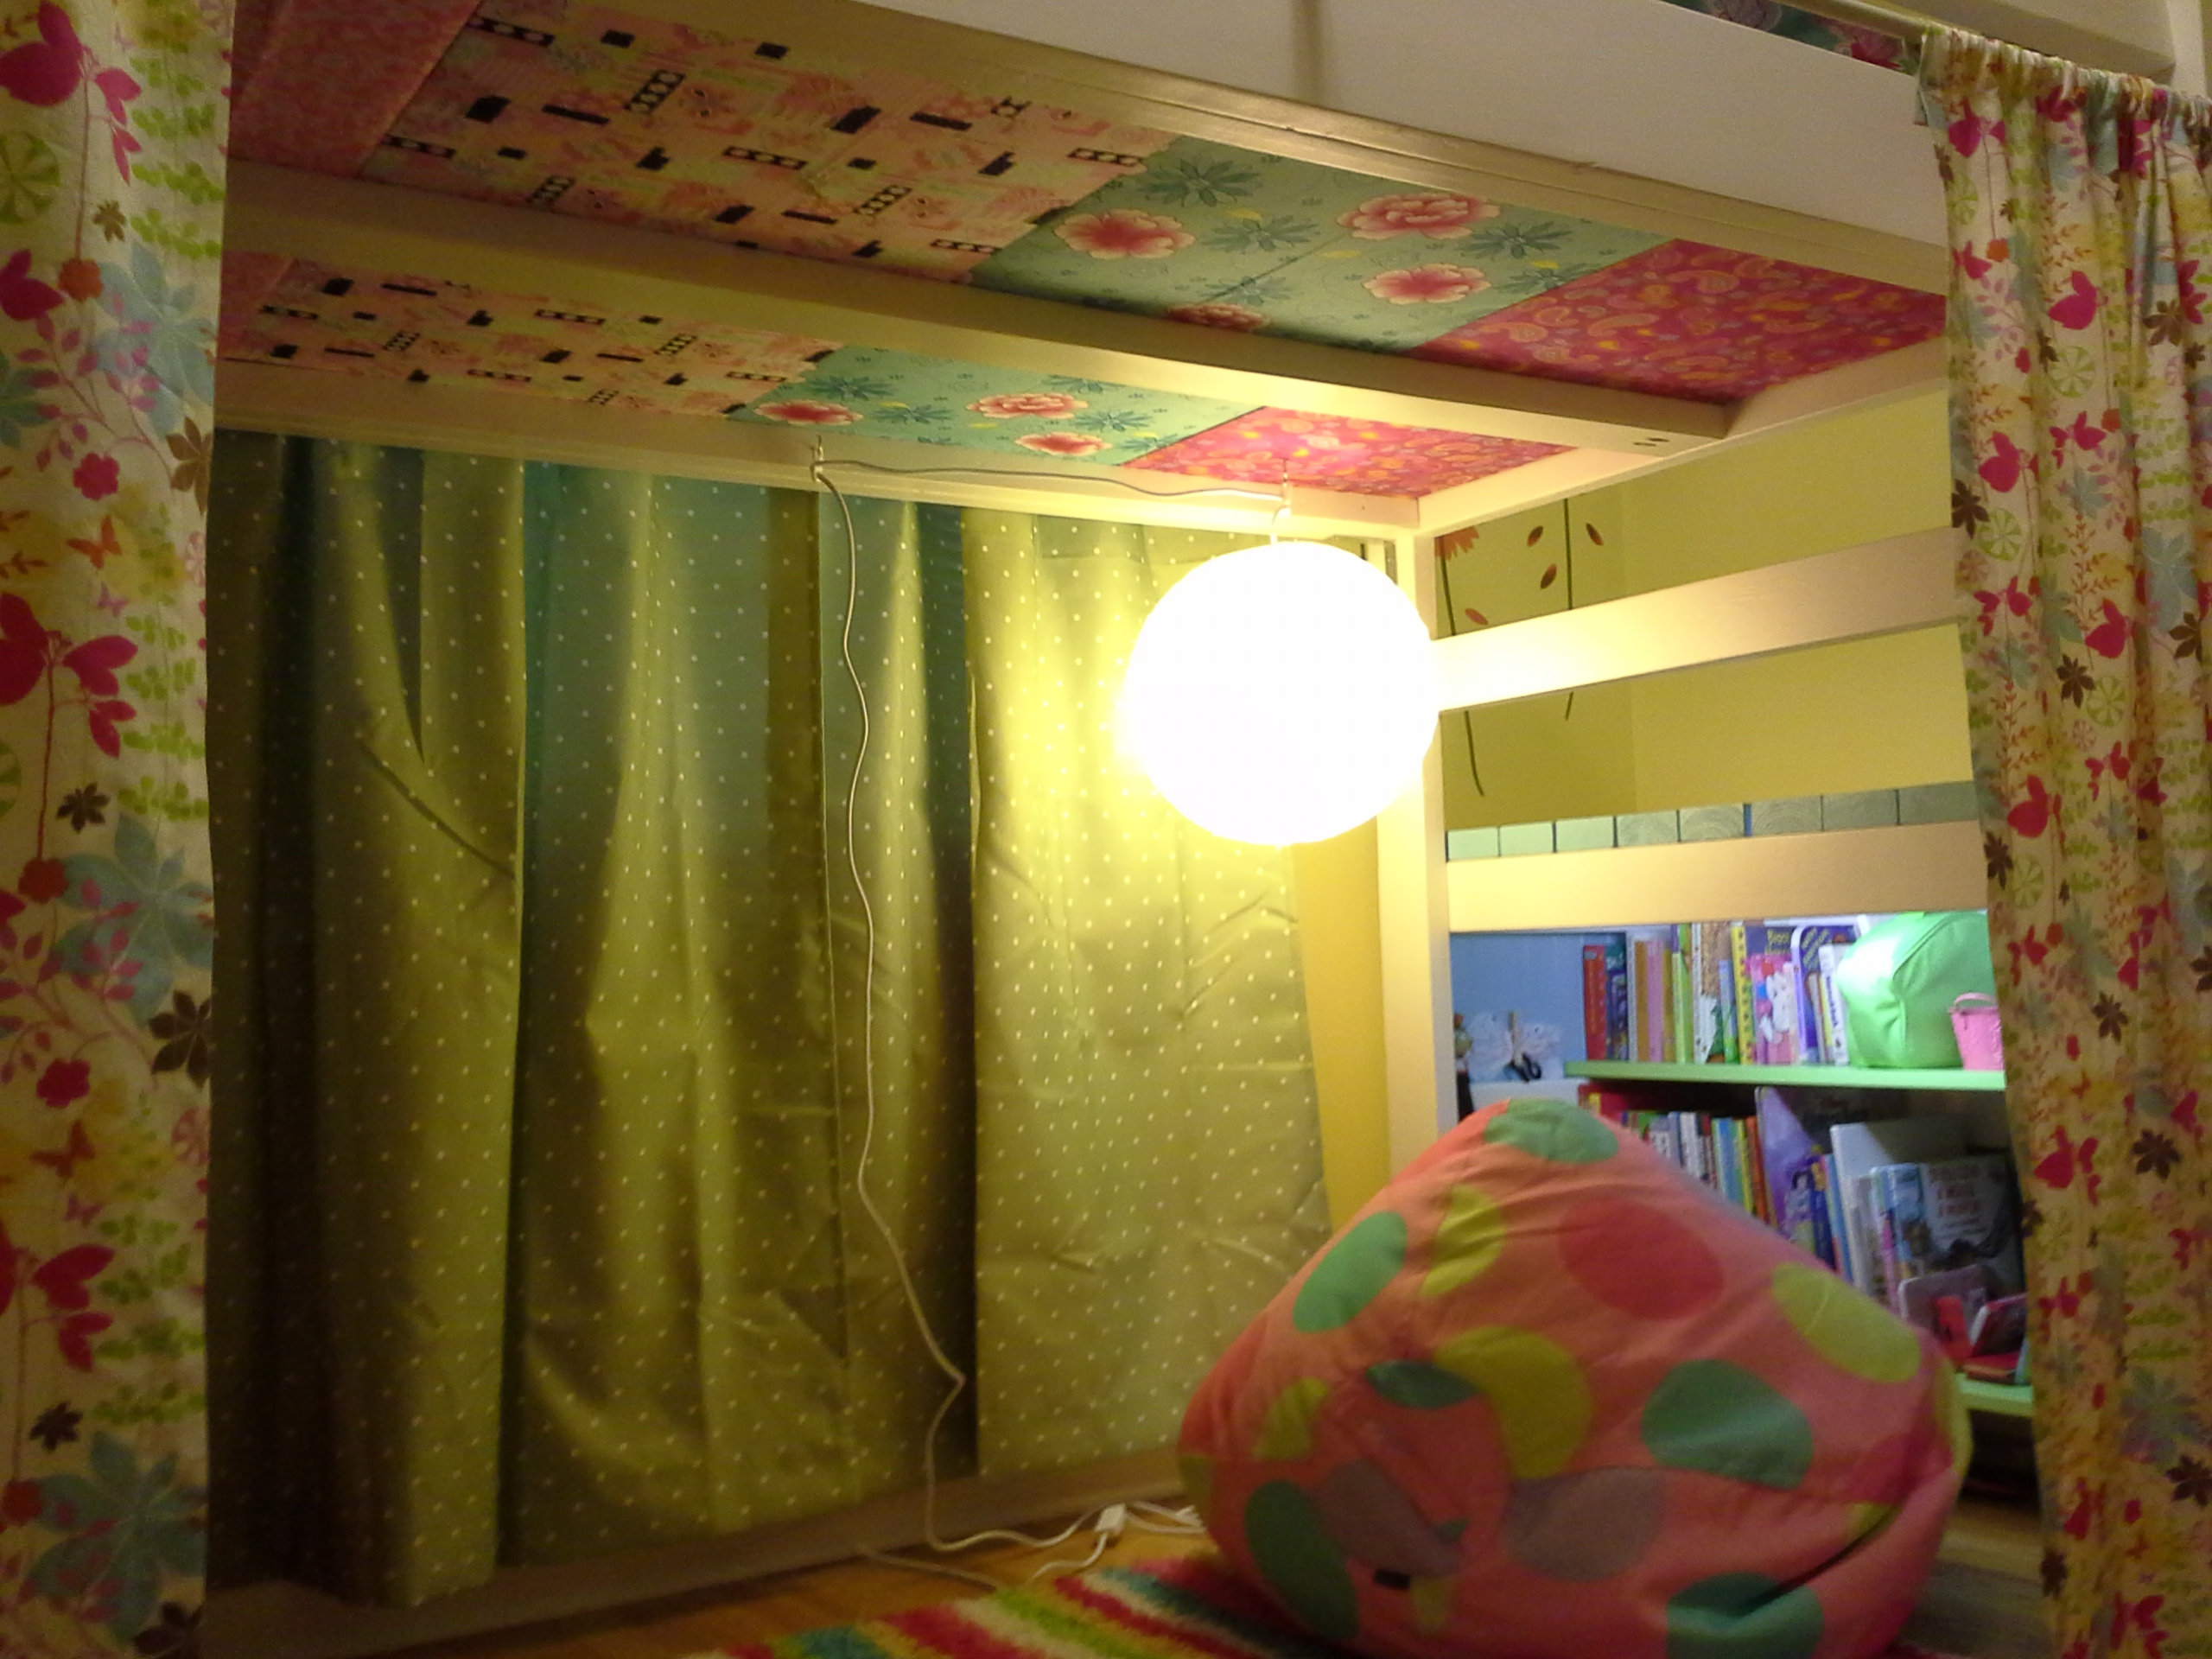 Bed Divider Design Ideas with Bunk Bed Curtains: Junior Loft Bed Curtains | Bunk Bed With Fort | Bunk Bed Curtains